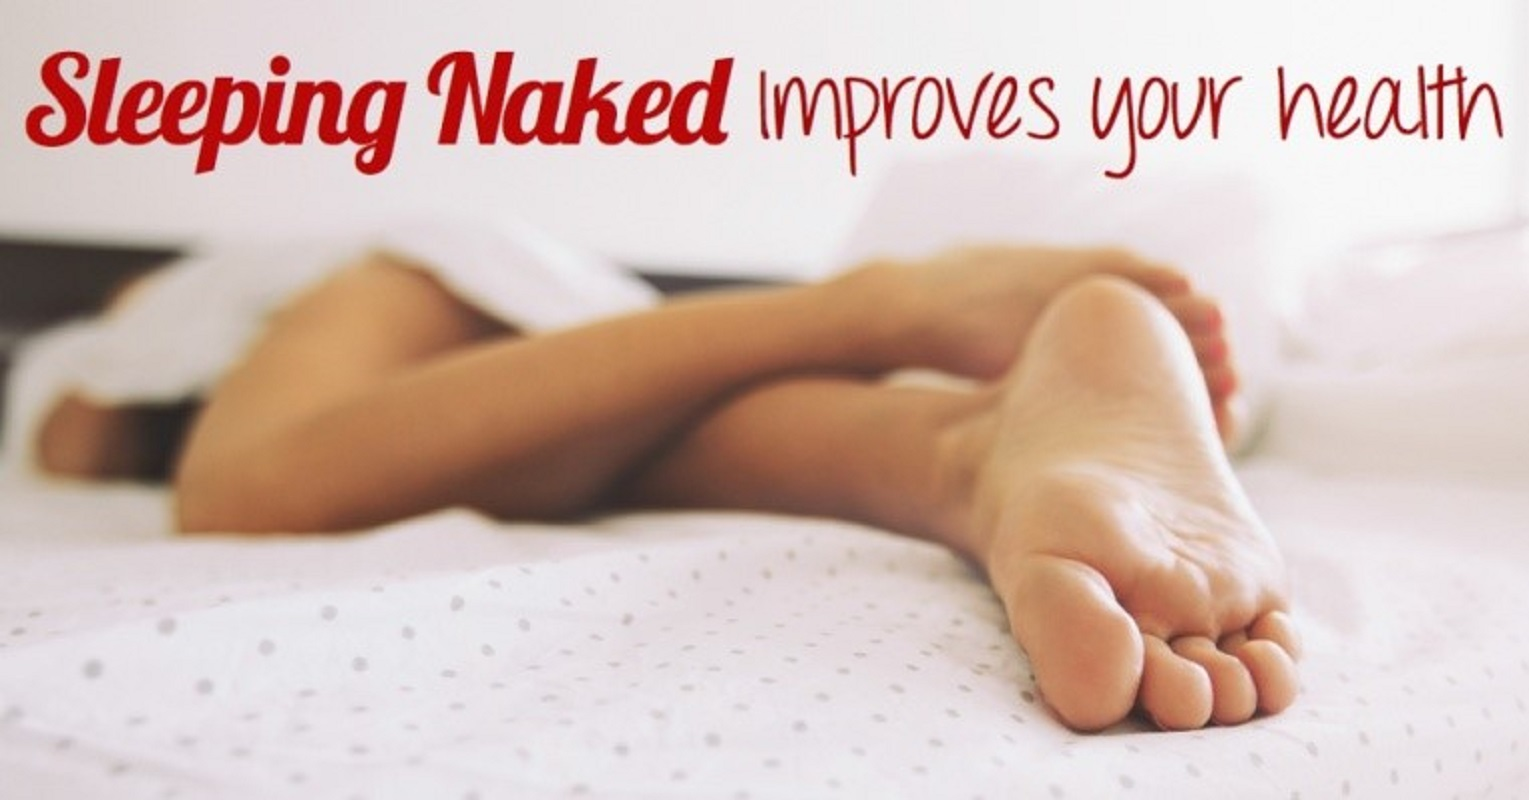 benefit of sleeping naked